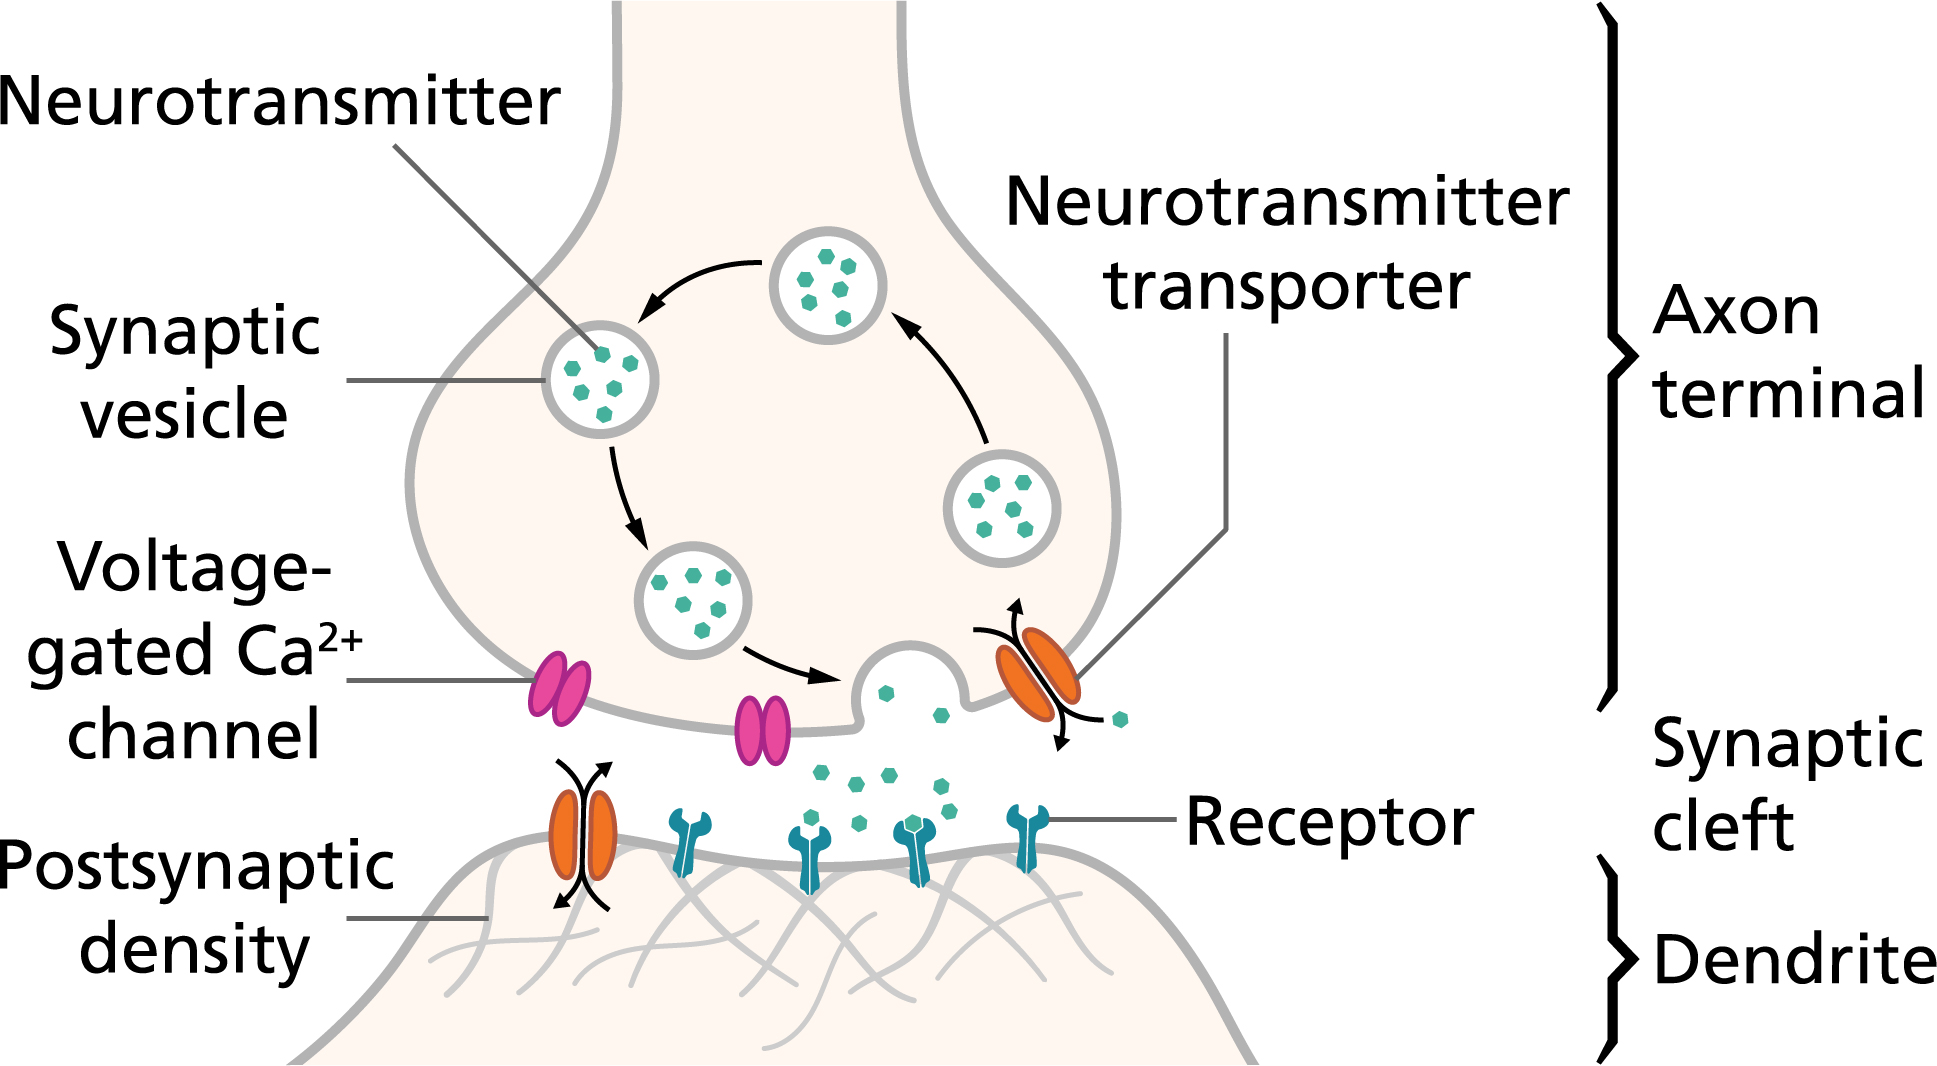 Action potentials and synapses queensland brain institute an action potential or spike causes neurotransmitters to be released across the synaptic cleft causing an electrical signal in the postsynaptic neuron ccuart Choice Image